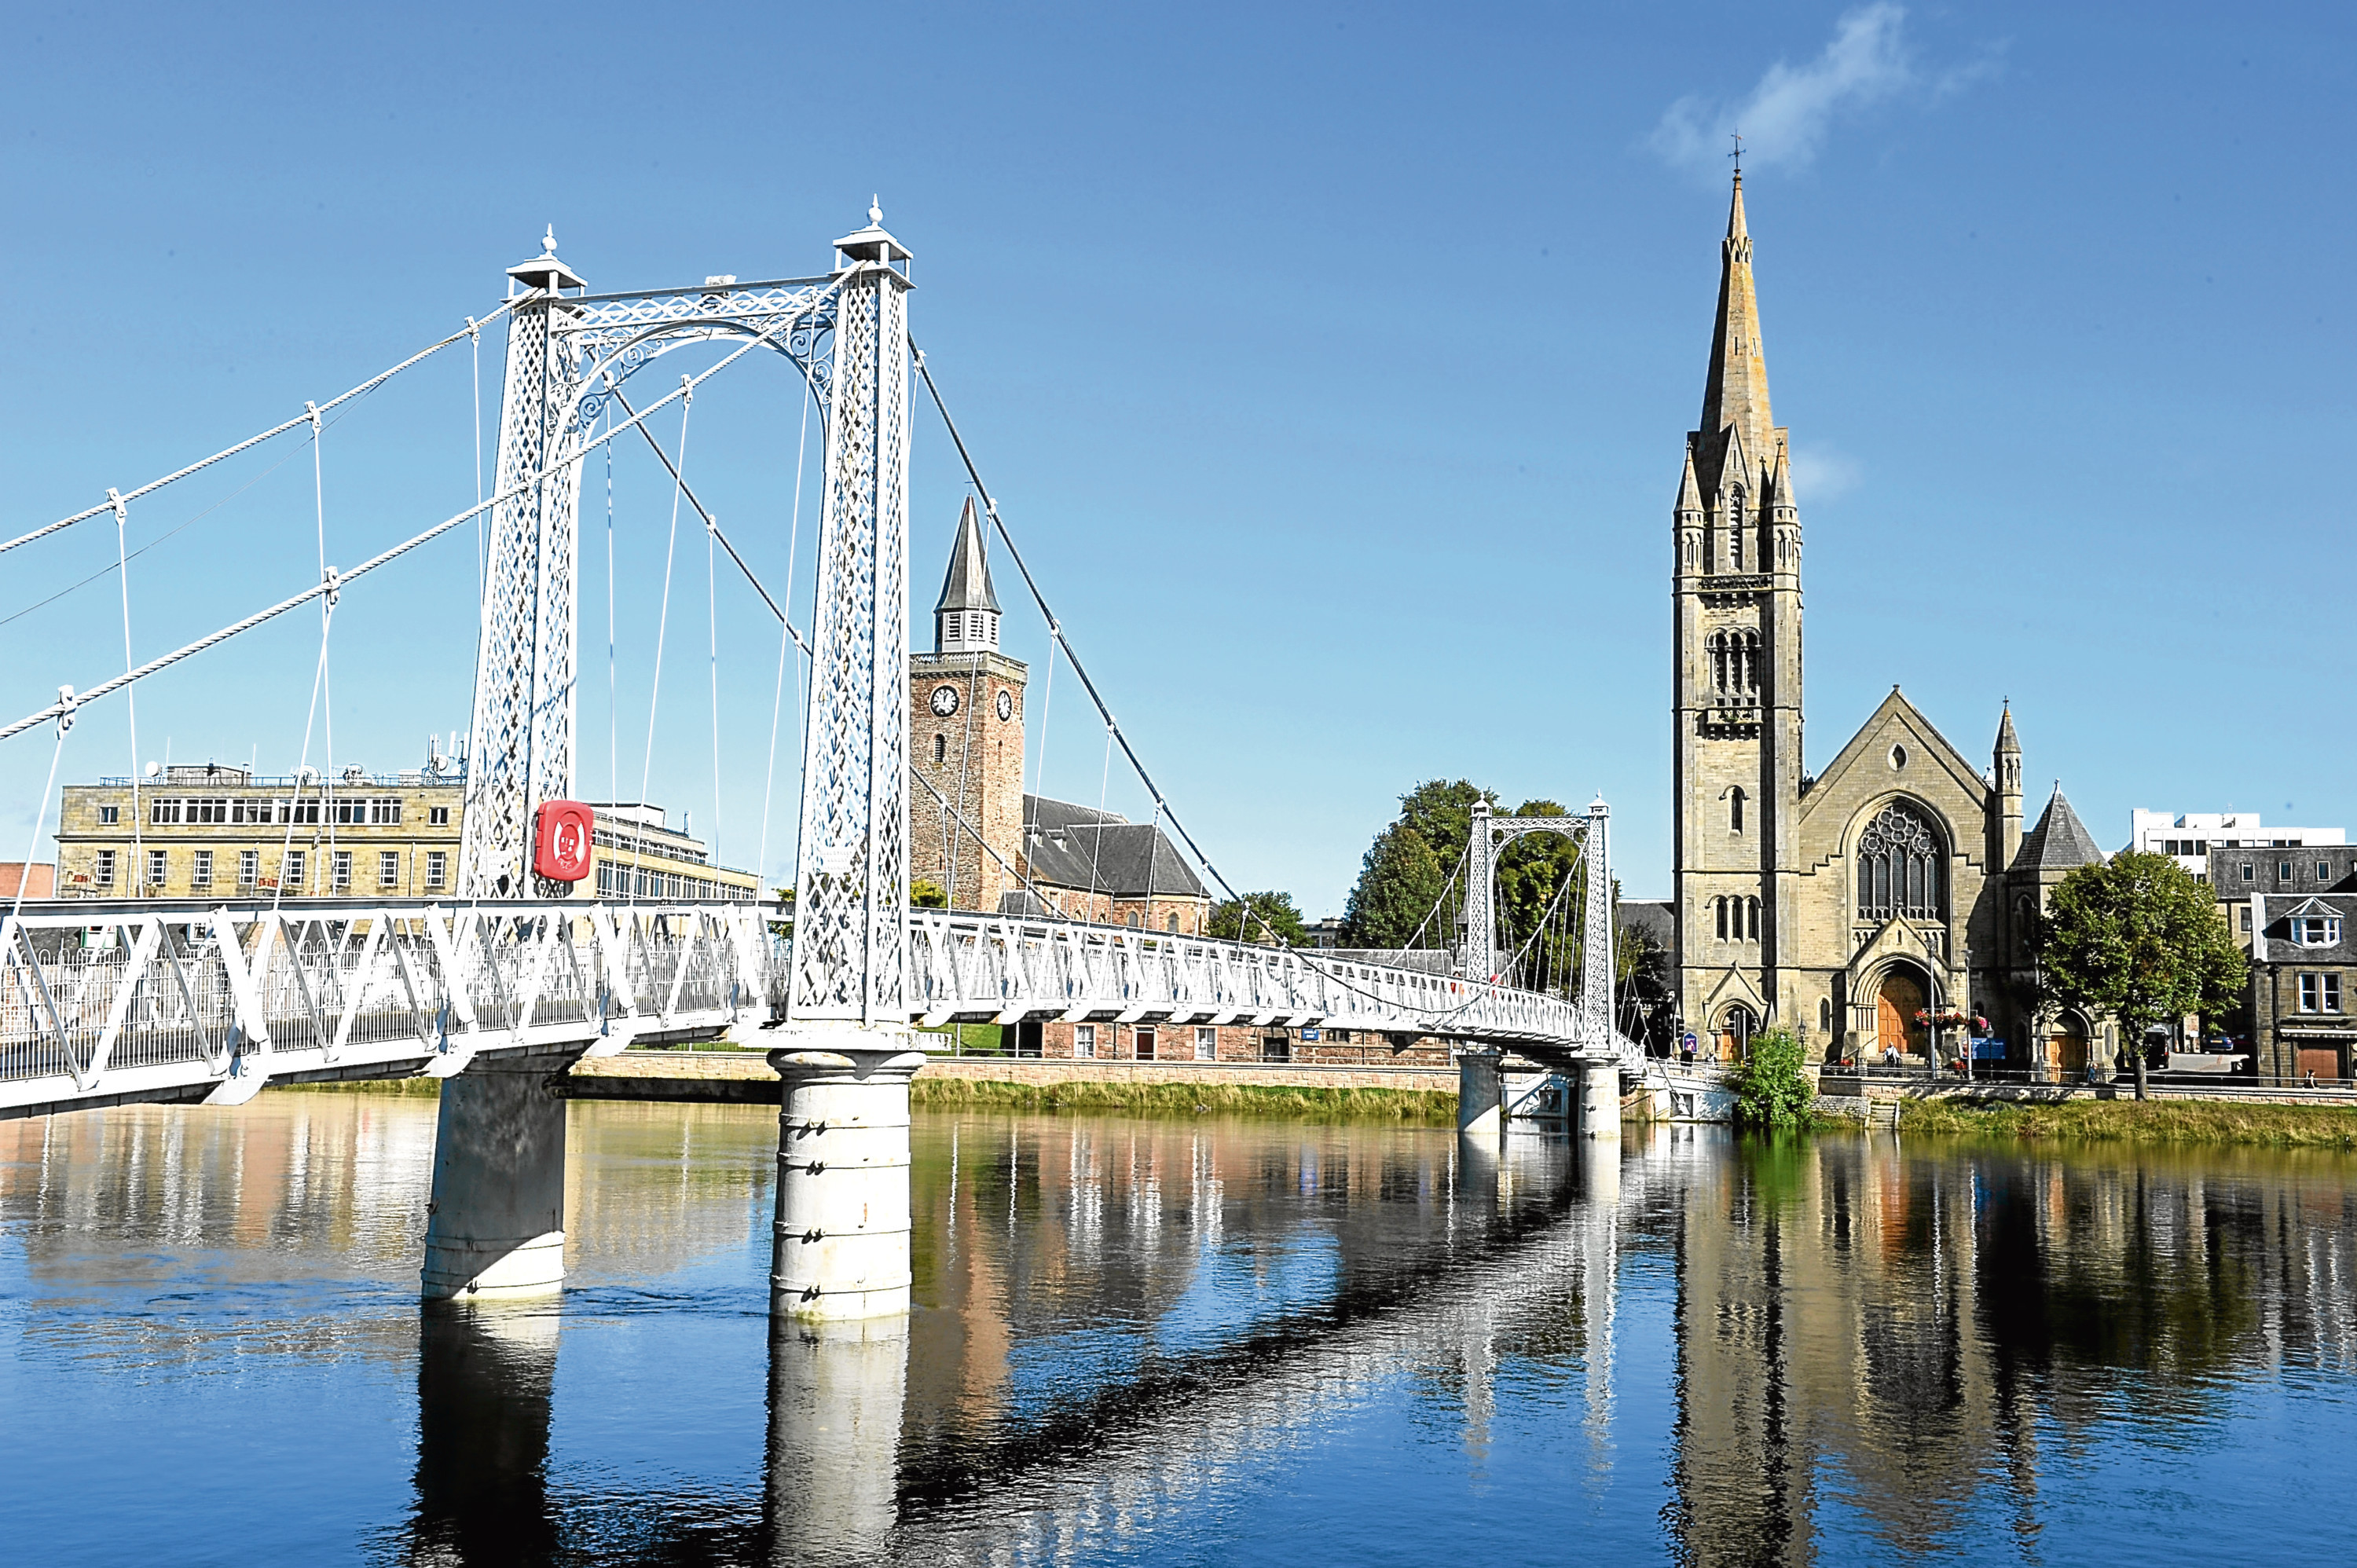 The Greig Street bridge in Inverness.